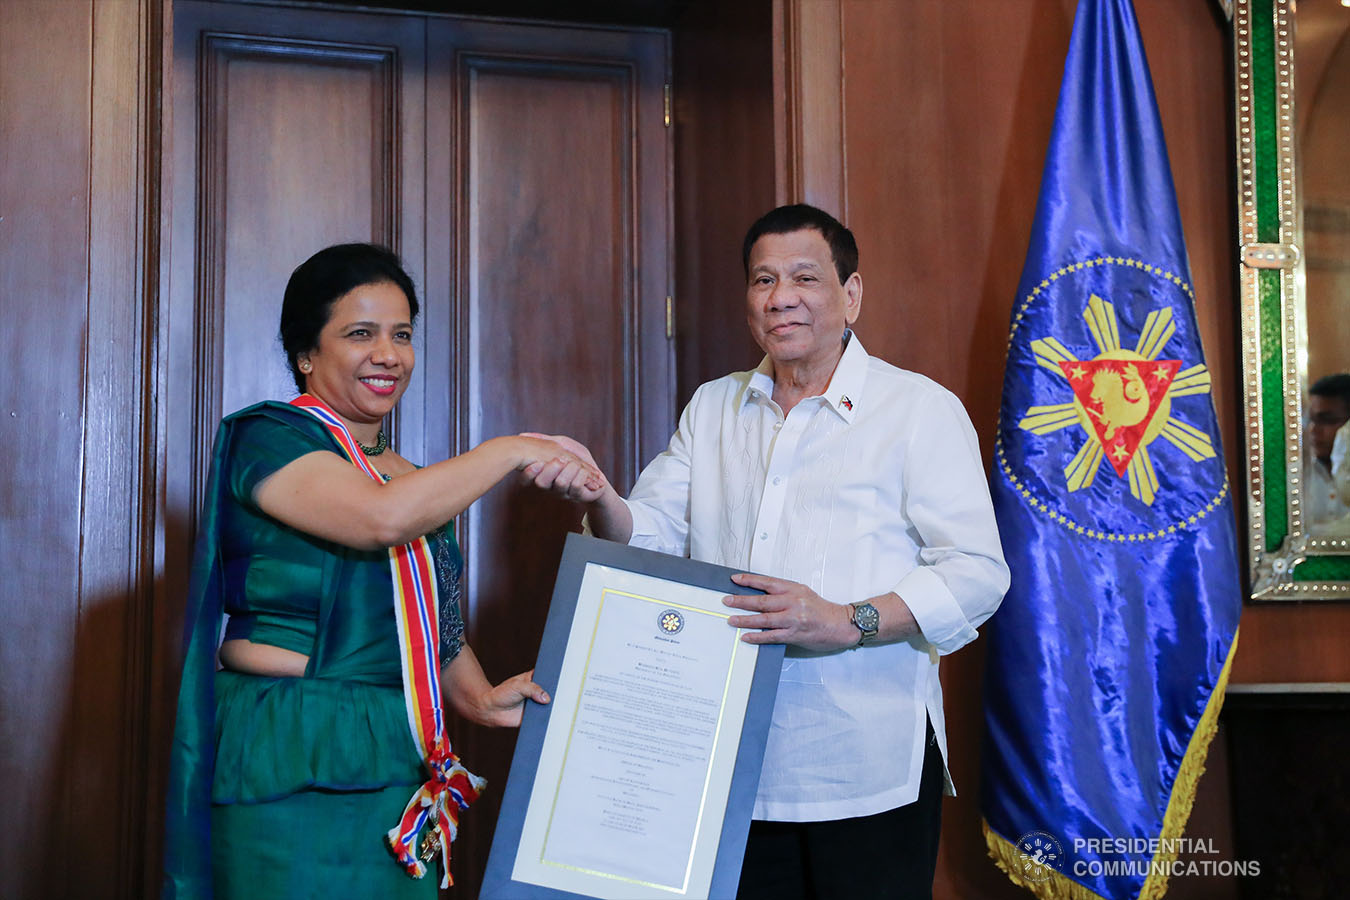 President Rodrigo Roa Duterte confers the Order of Sikatuna with the Rank of Grand Cross (Datu), Gold Distinction on outgoing Ambassador of the Democratic Socialist Republic of Sri Lanka to the Philippines Aruni Ranaraja who paid a farewell call on the President at the Malacañan Palace on June 18, 2019. ALFRED FRIAS/PRESIDENTIAL PHOTO